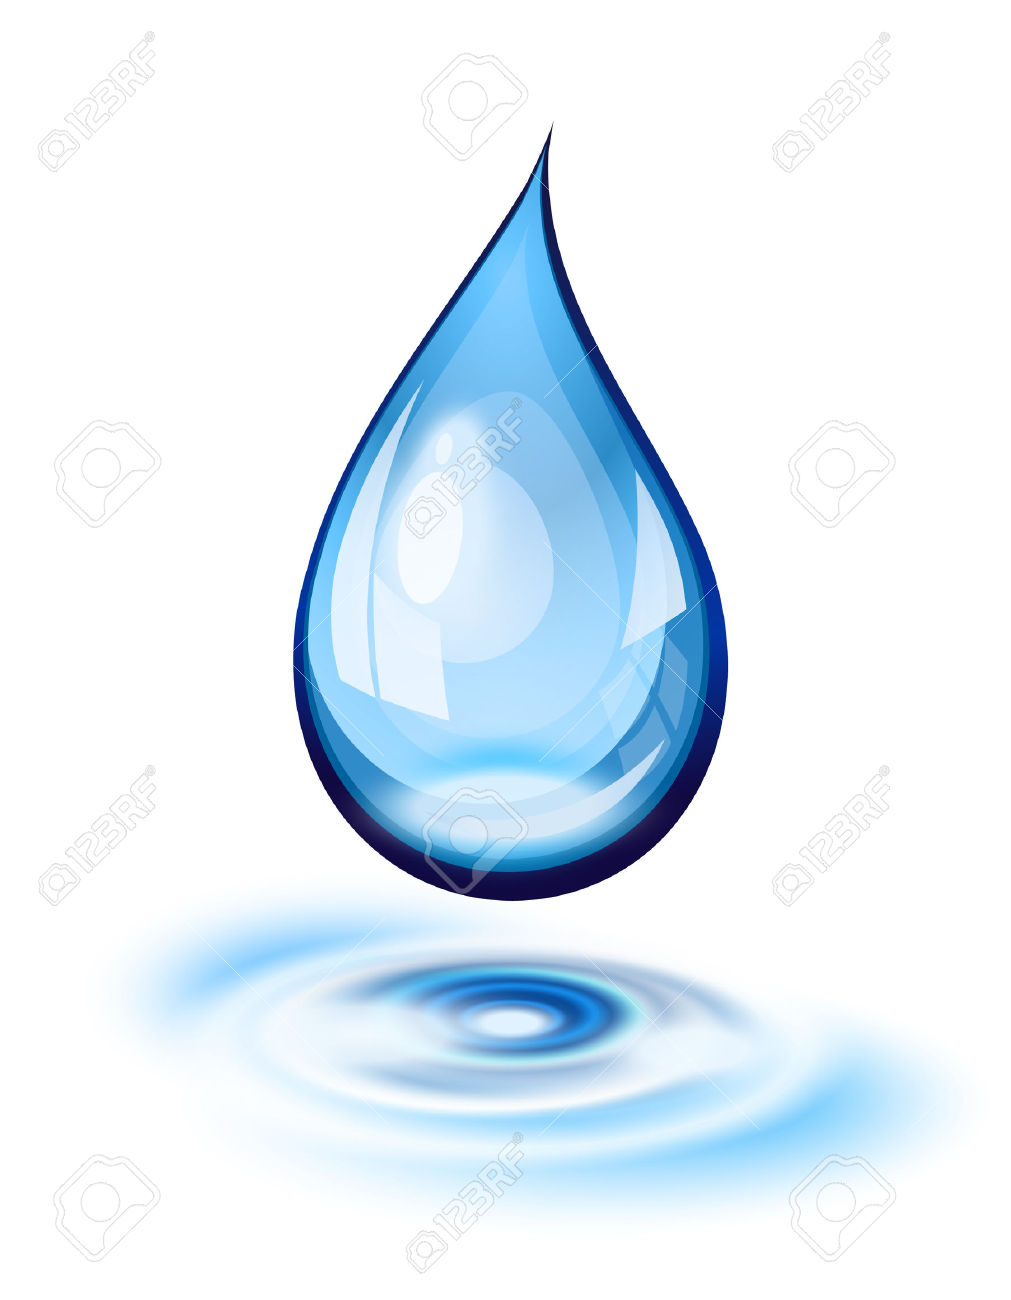 Droplet clipart water drop. Droplets ripple pencil and